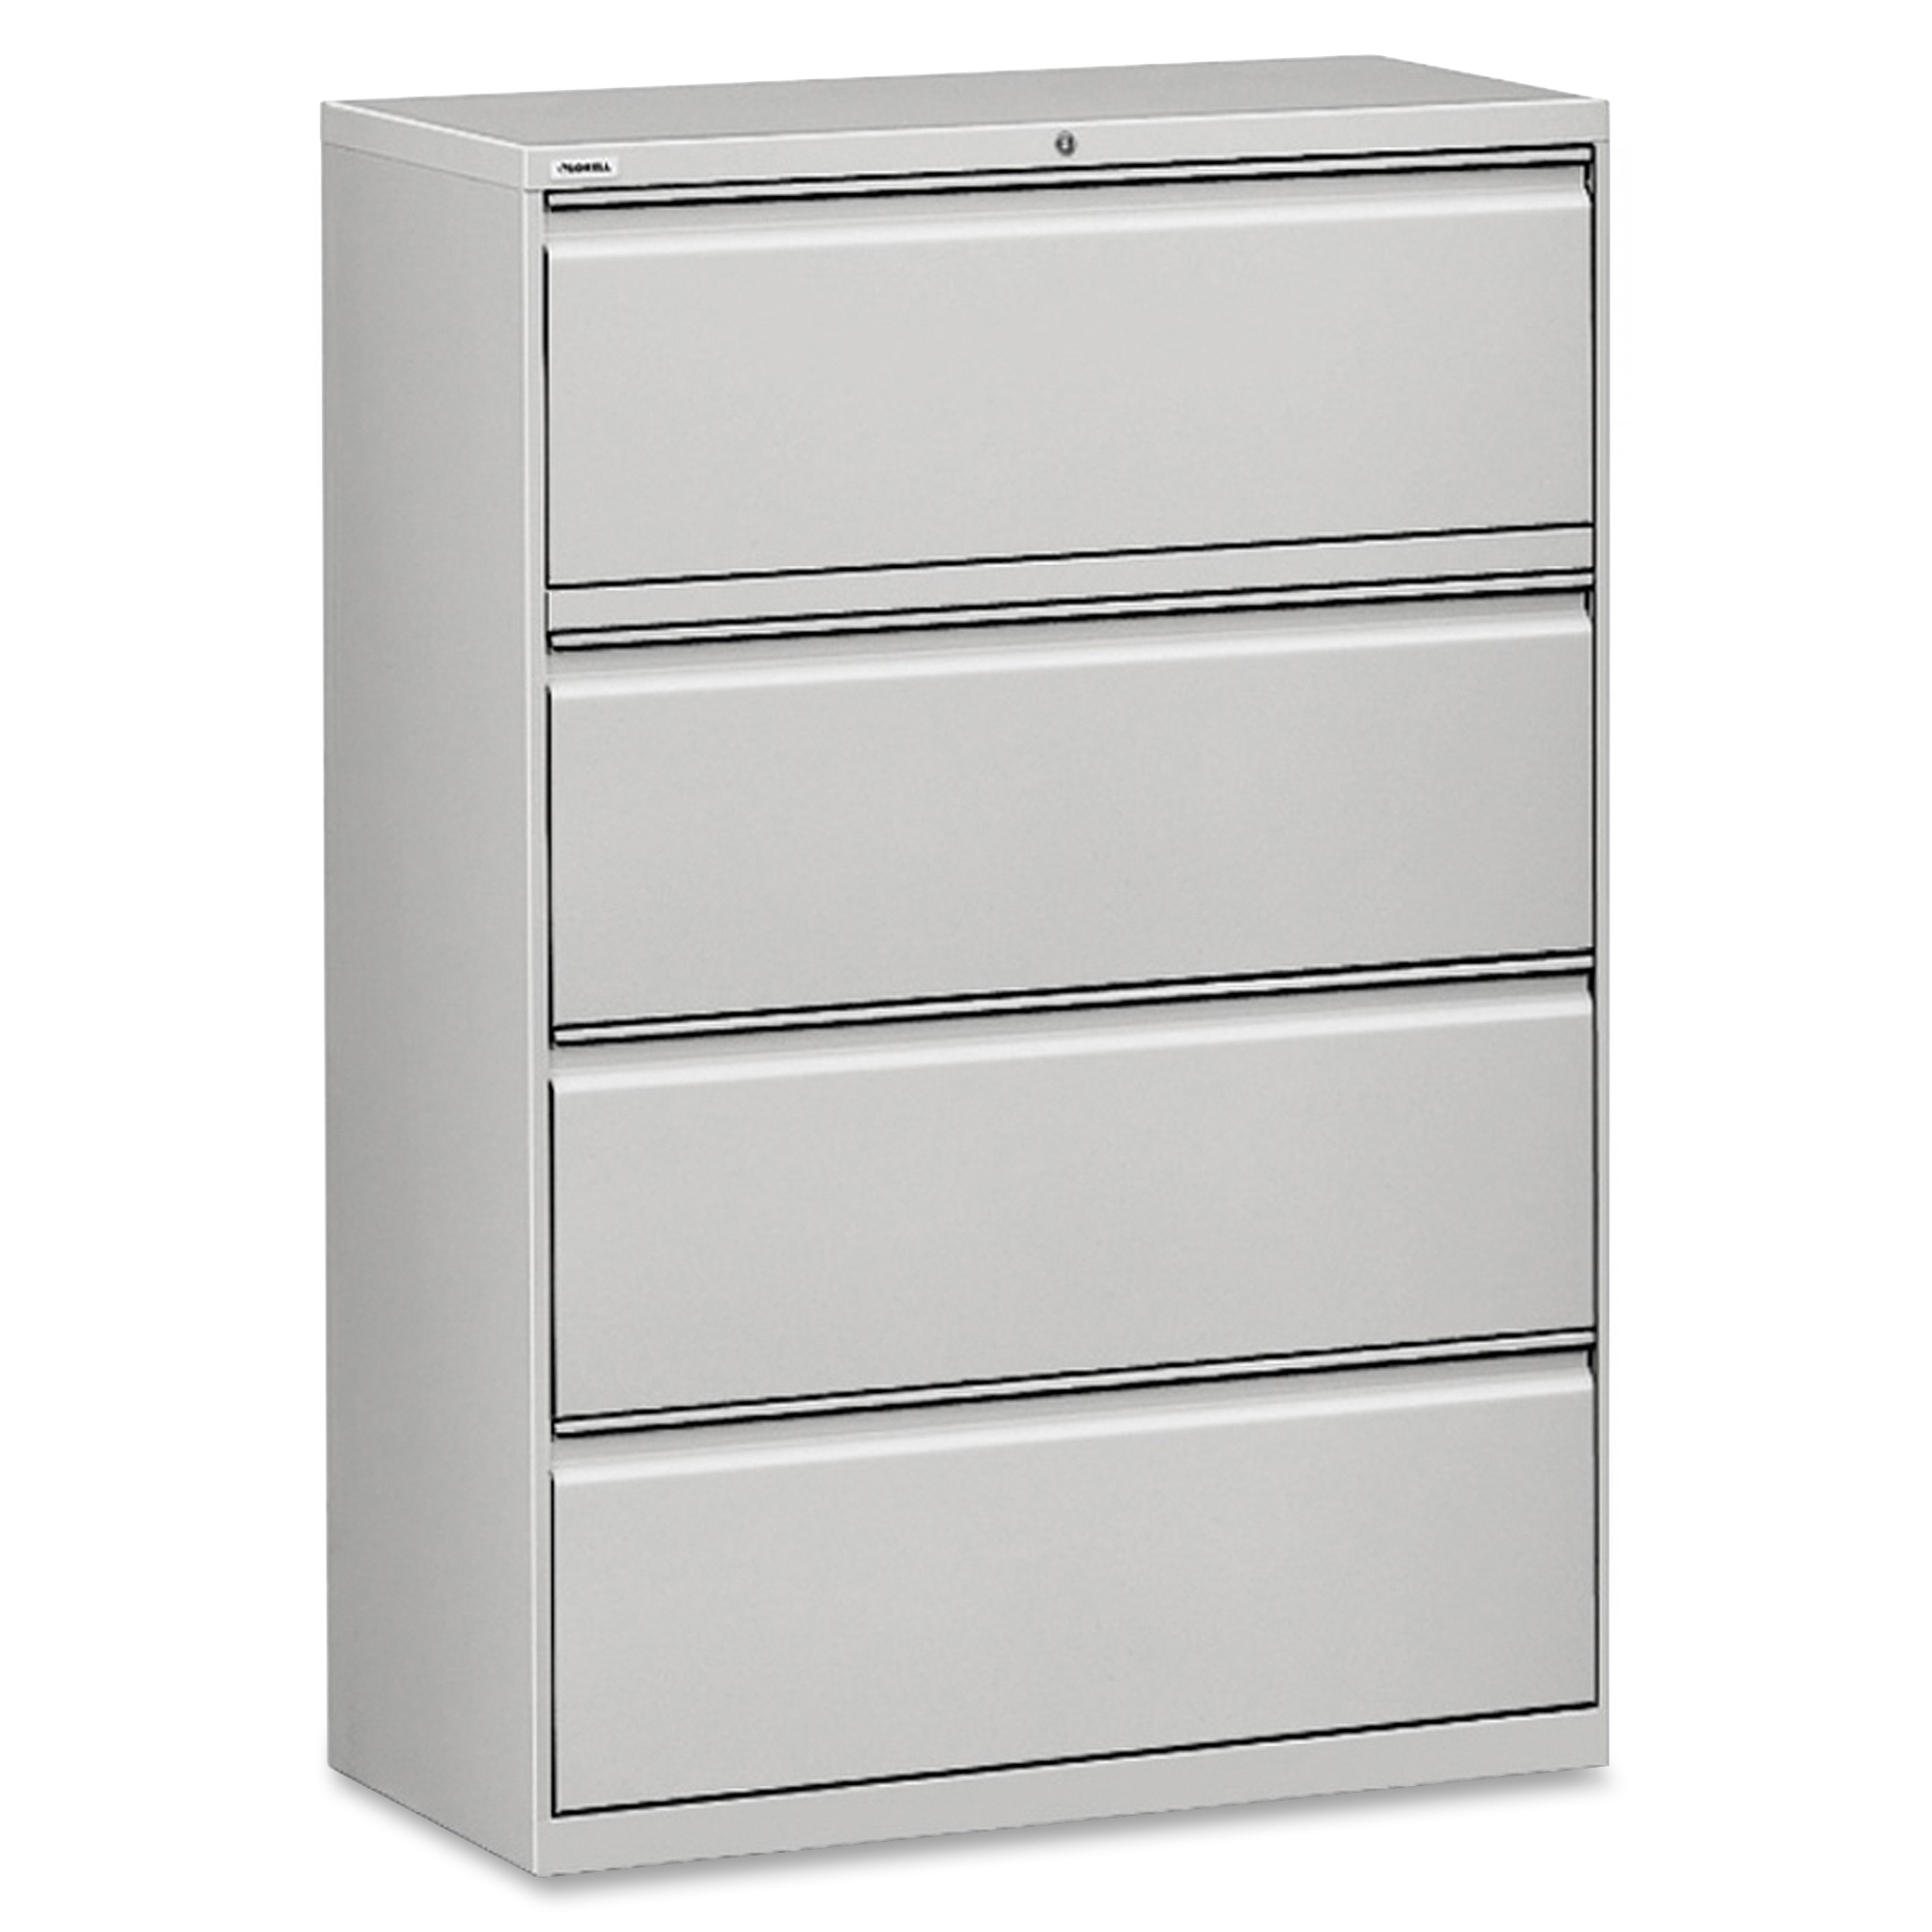 Lorell 60445 Lorell 60445 Lateral File Llr60445 Llr 60445 within size 2000 X 2000